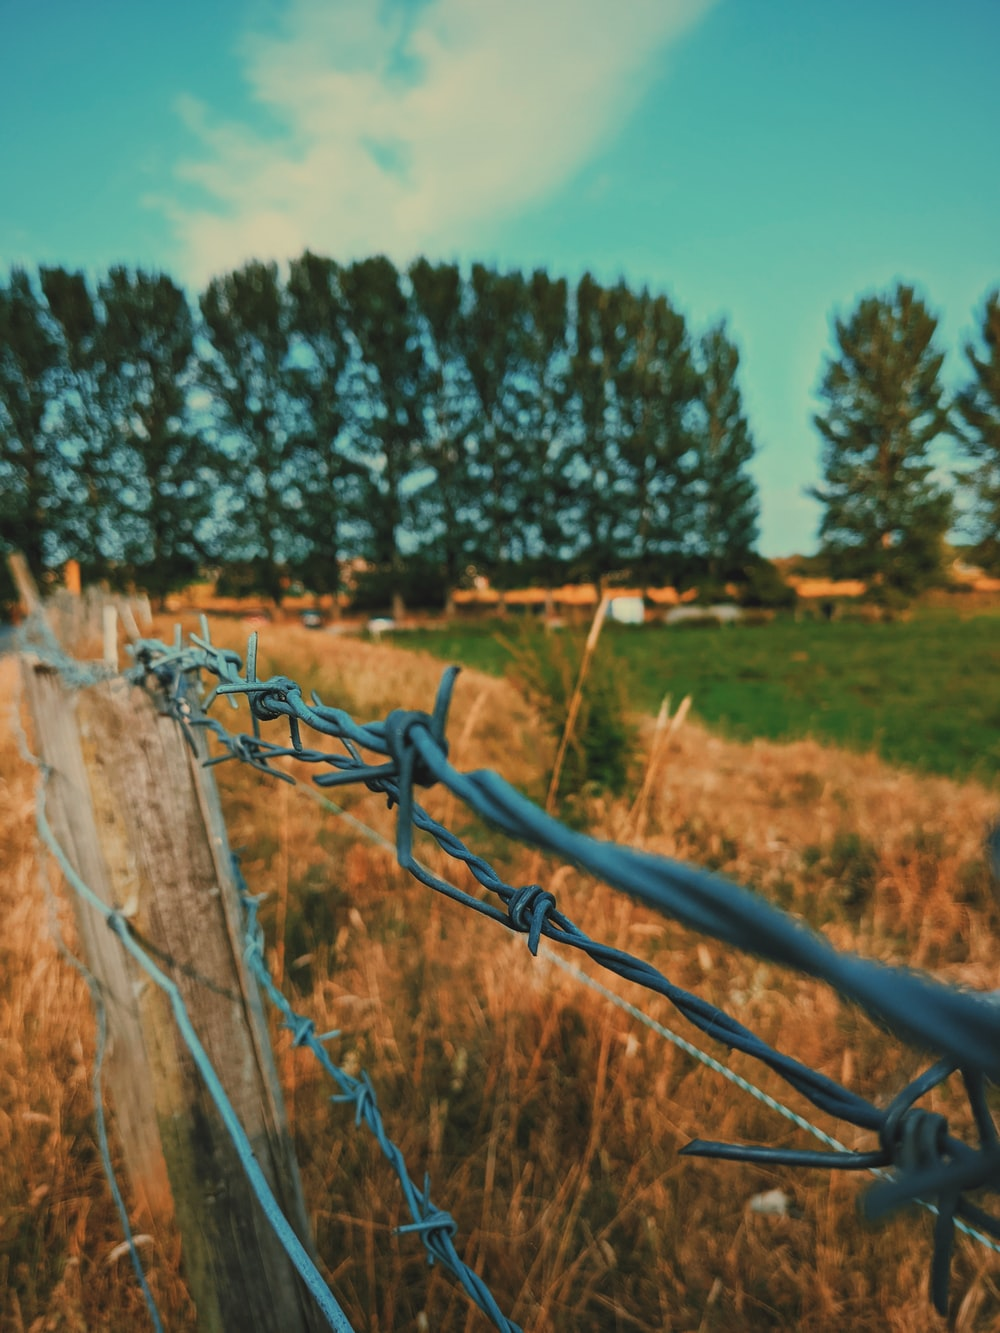 gray barbwire fence on brown grass field during daytime